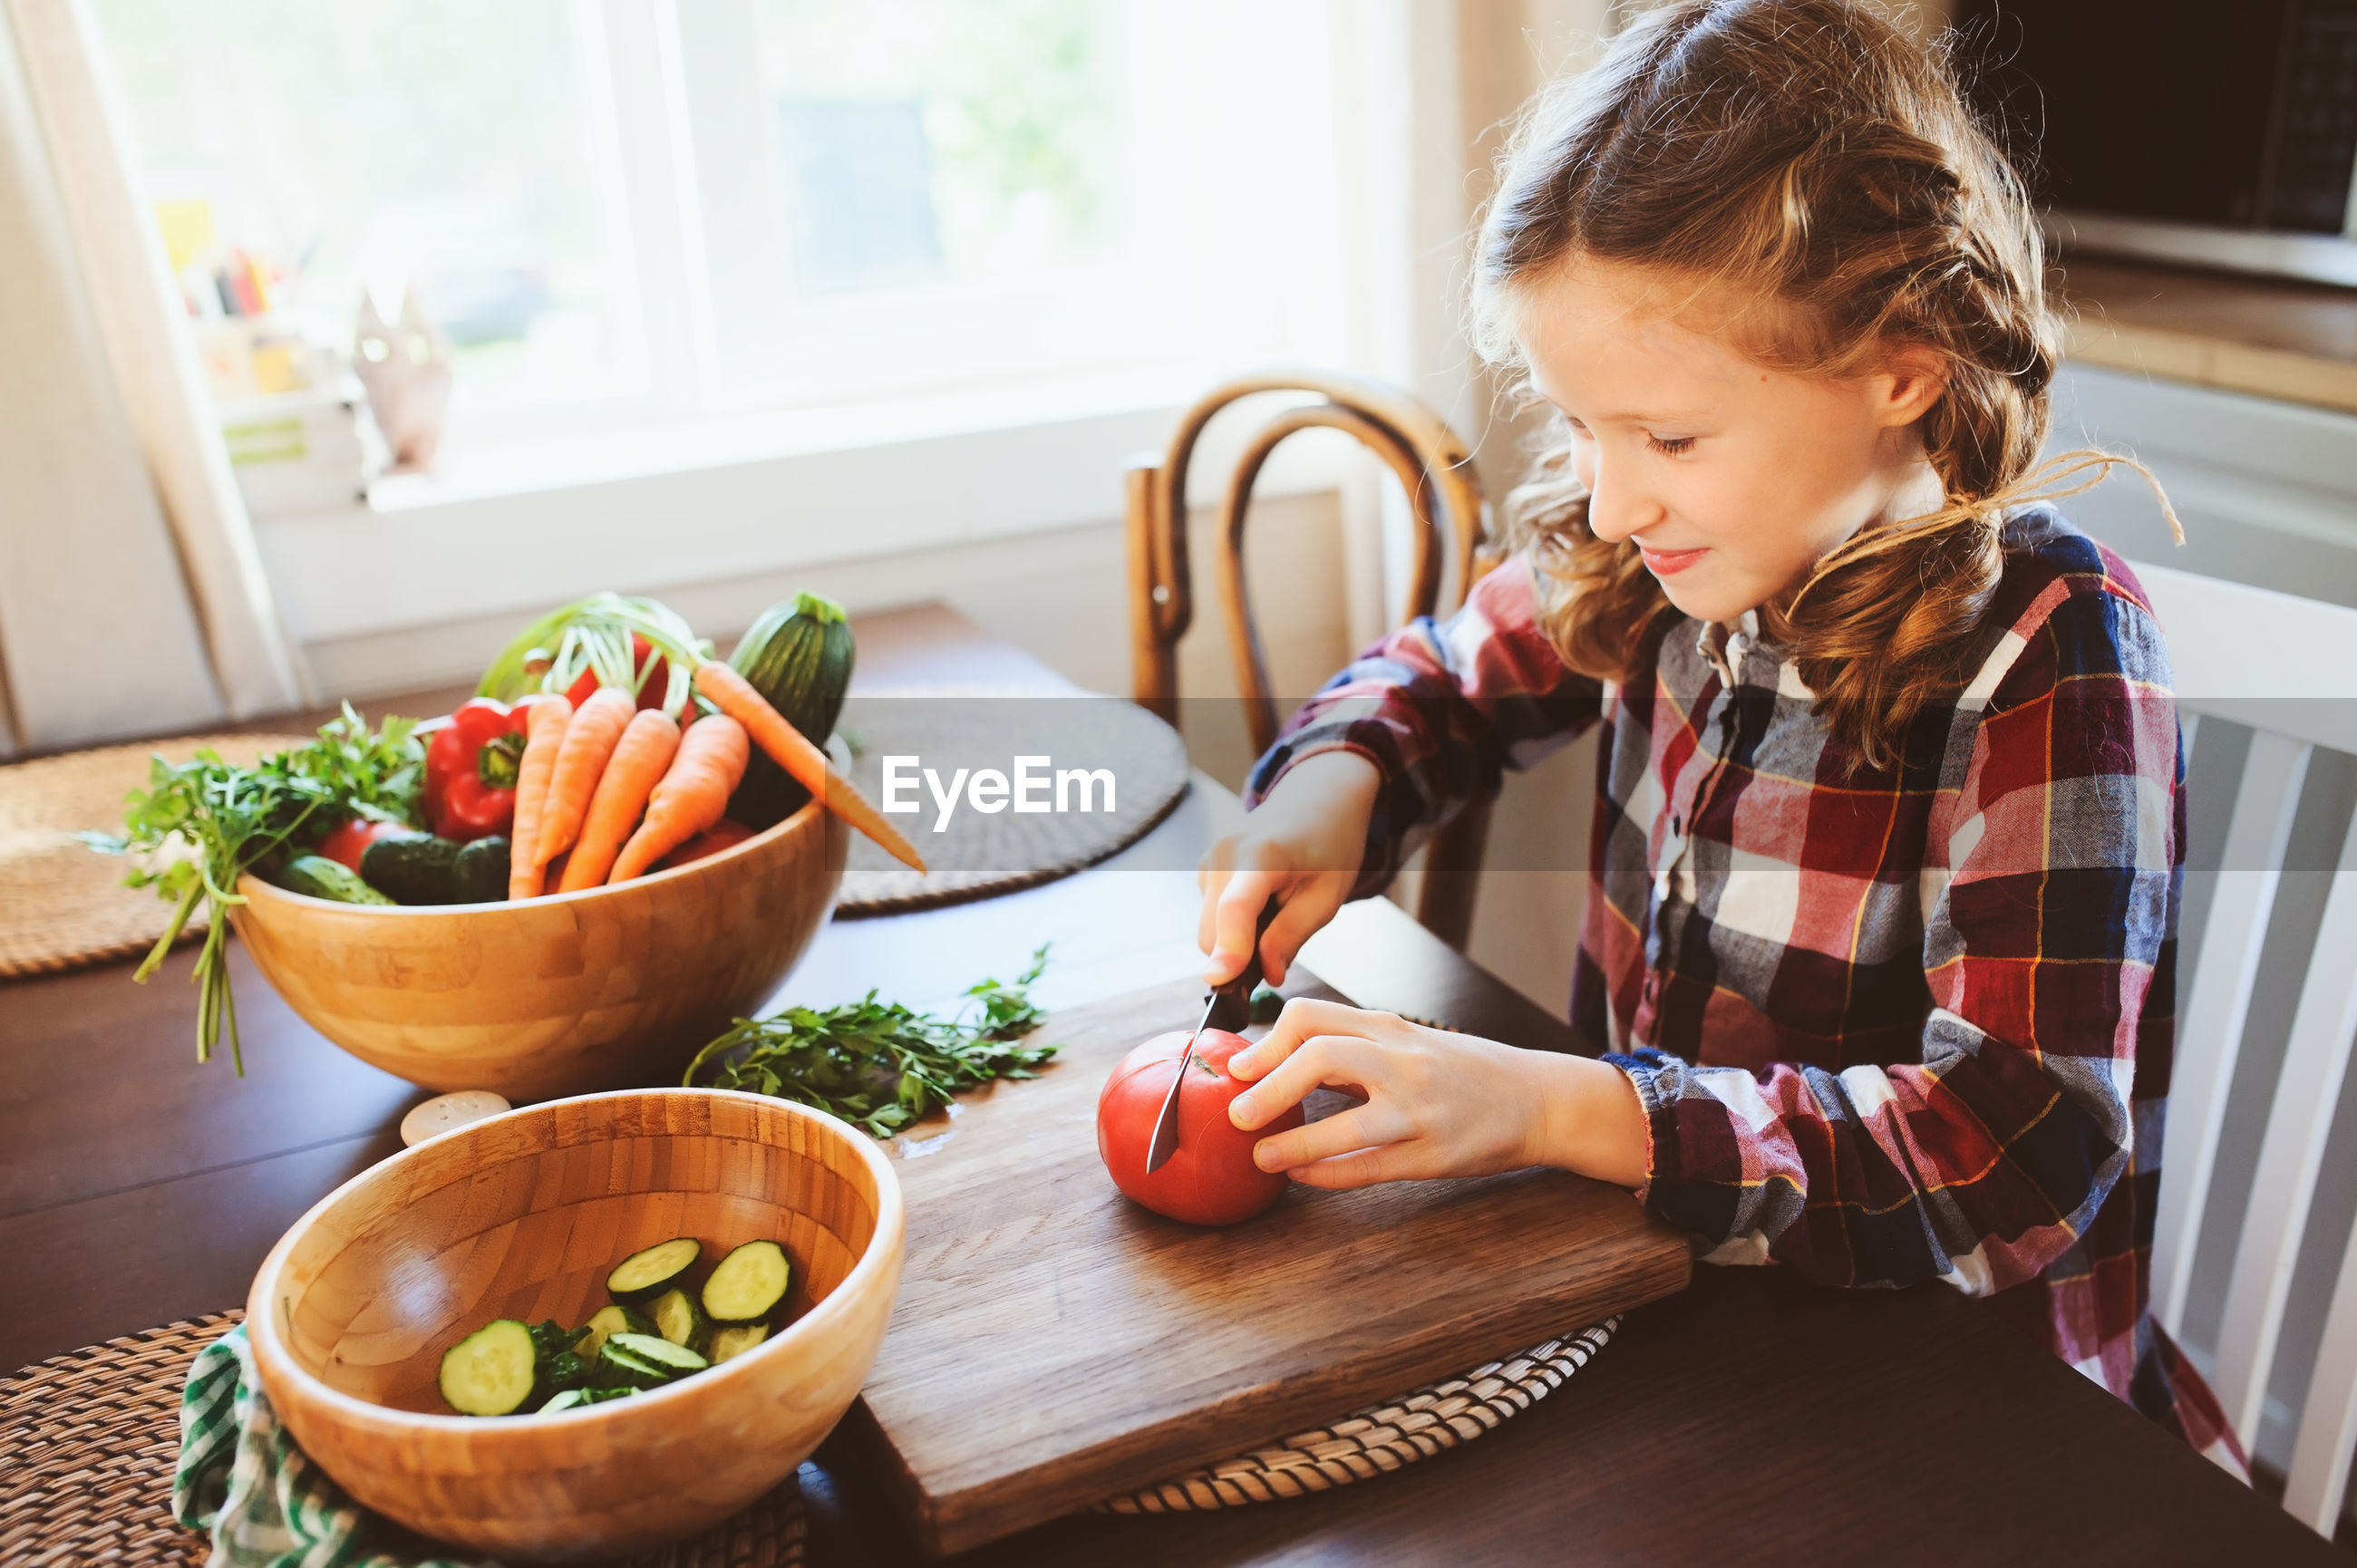 Girl cutting tomato on table in kitchen at home